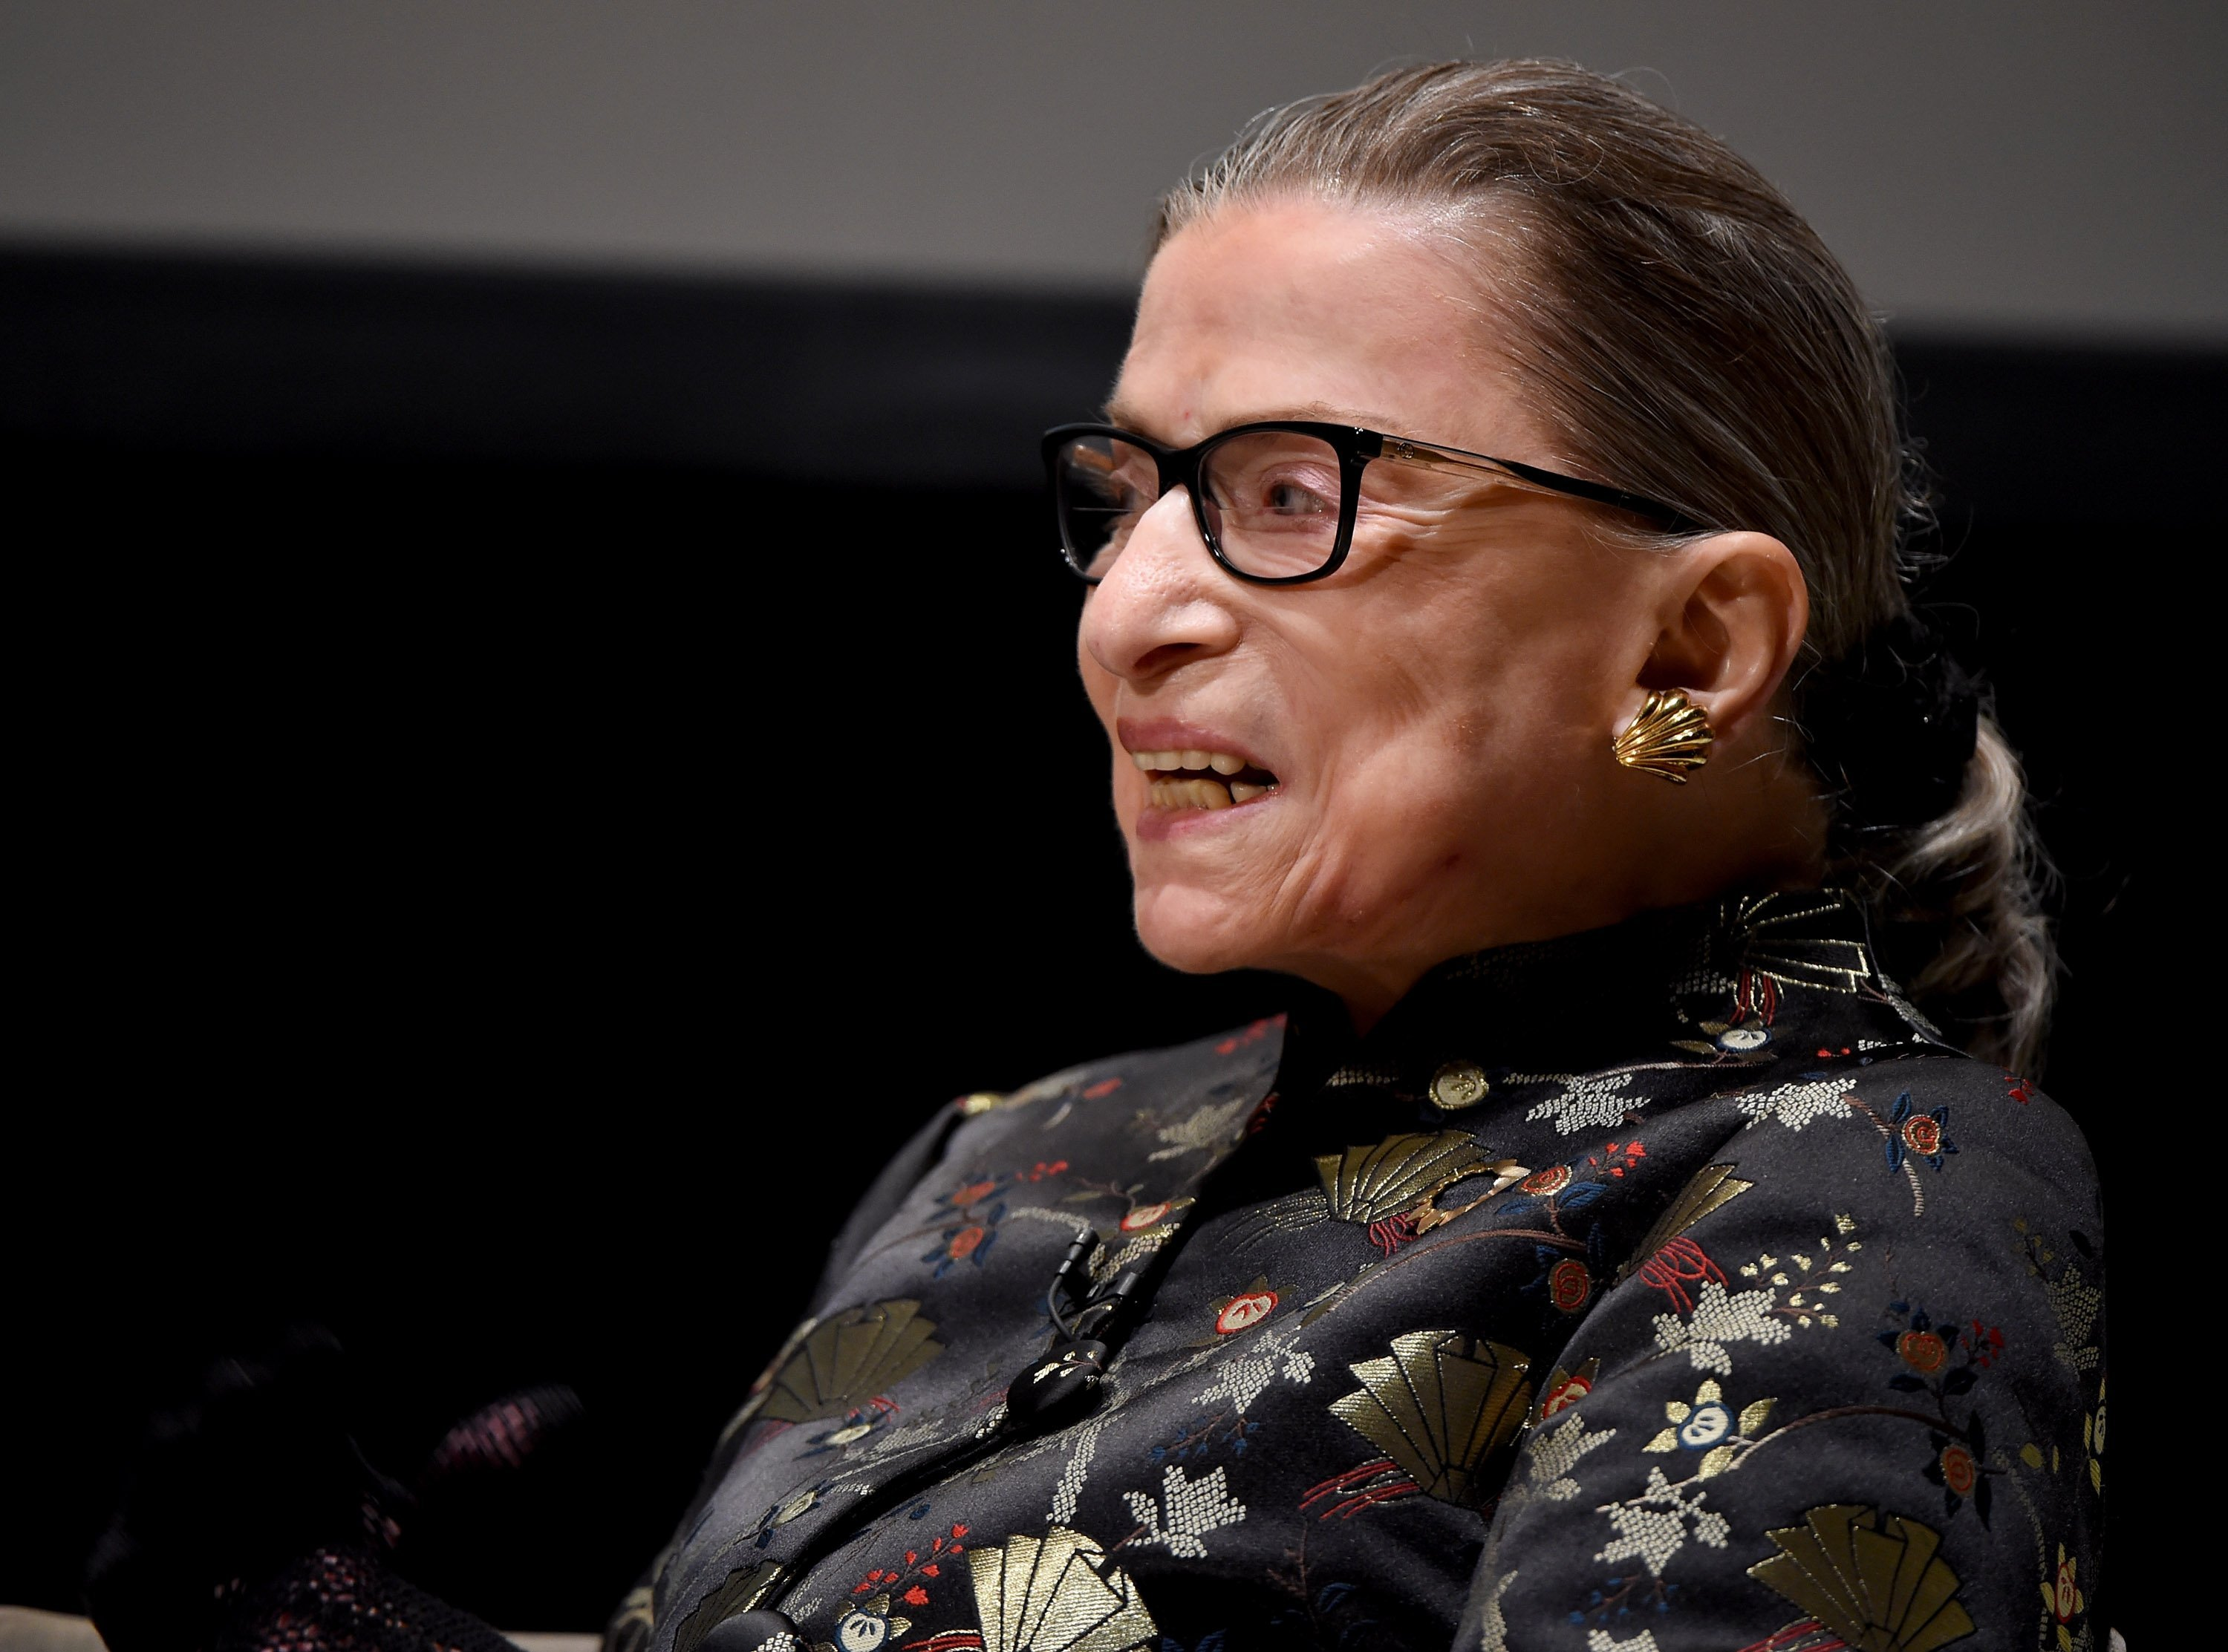 Supreme Court Justice Ruth Bader Ginsburg presents onstage at An Historic Evening with Supreme Court Justice Ruth Bader Ginsburg at the Temple Emanu-El Skirball Center on September 21, 2016 | Photo: GettyImages